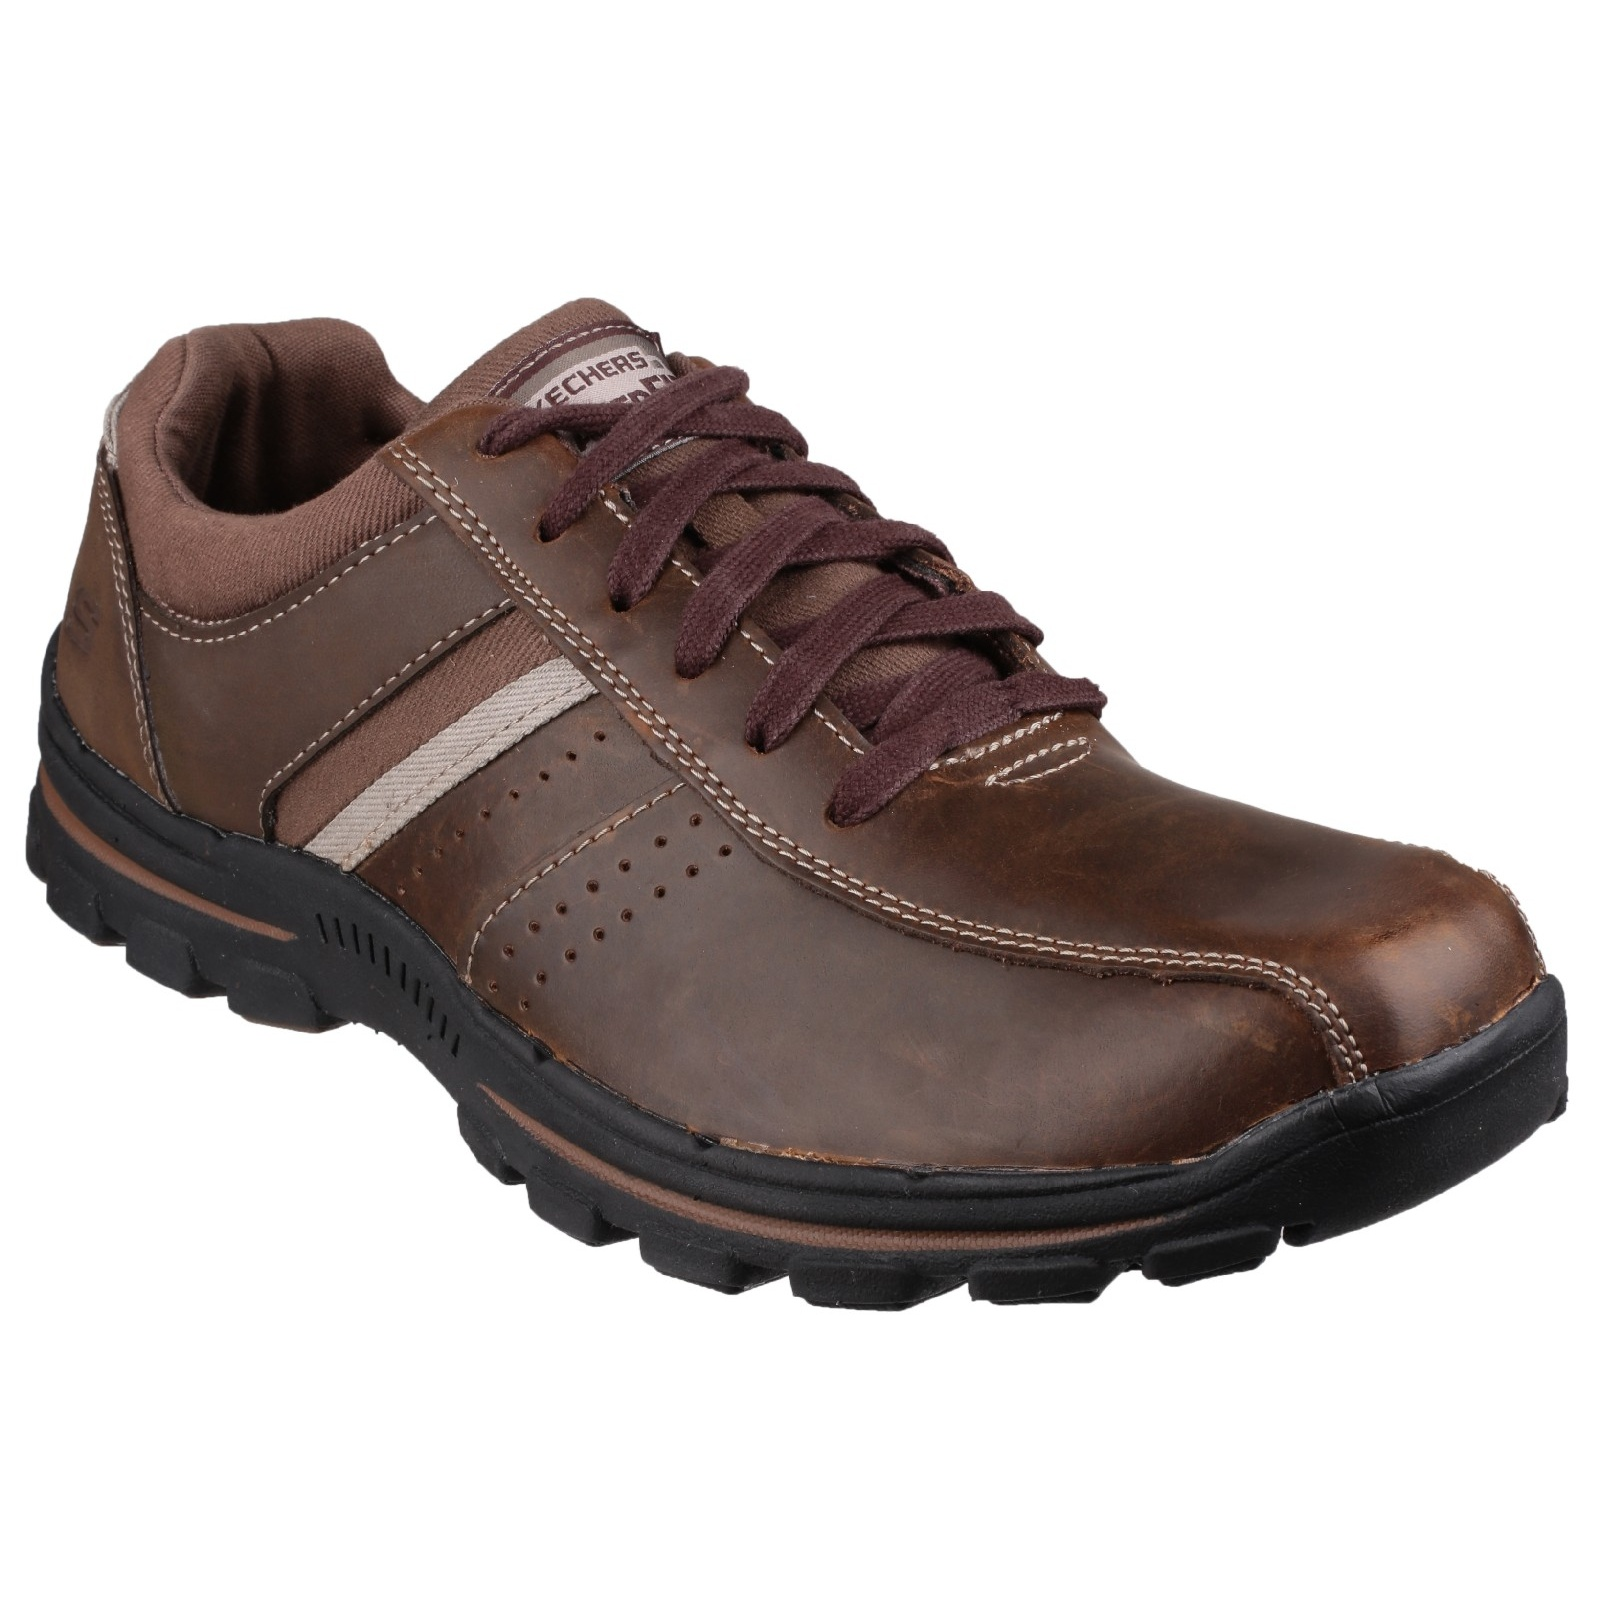 skechers mens braver alfano lace up oxford style shoes ebay